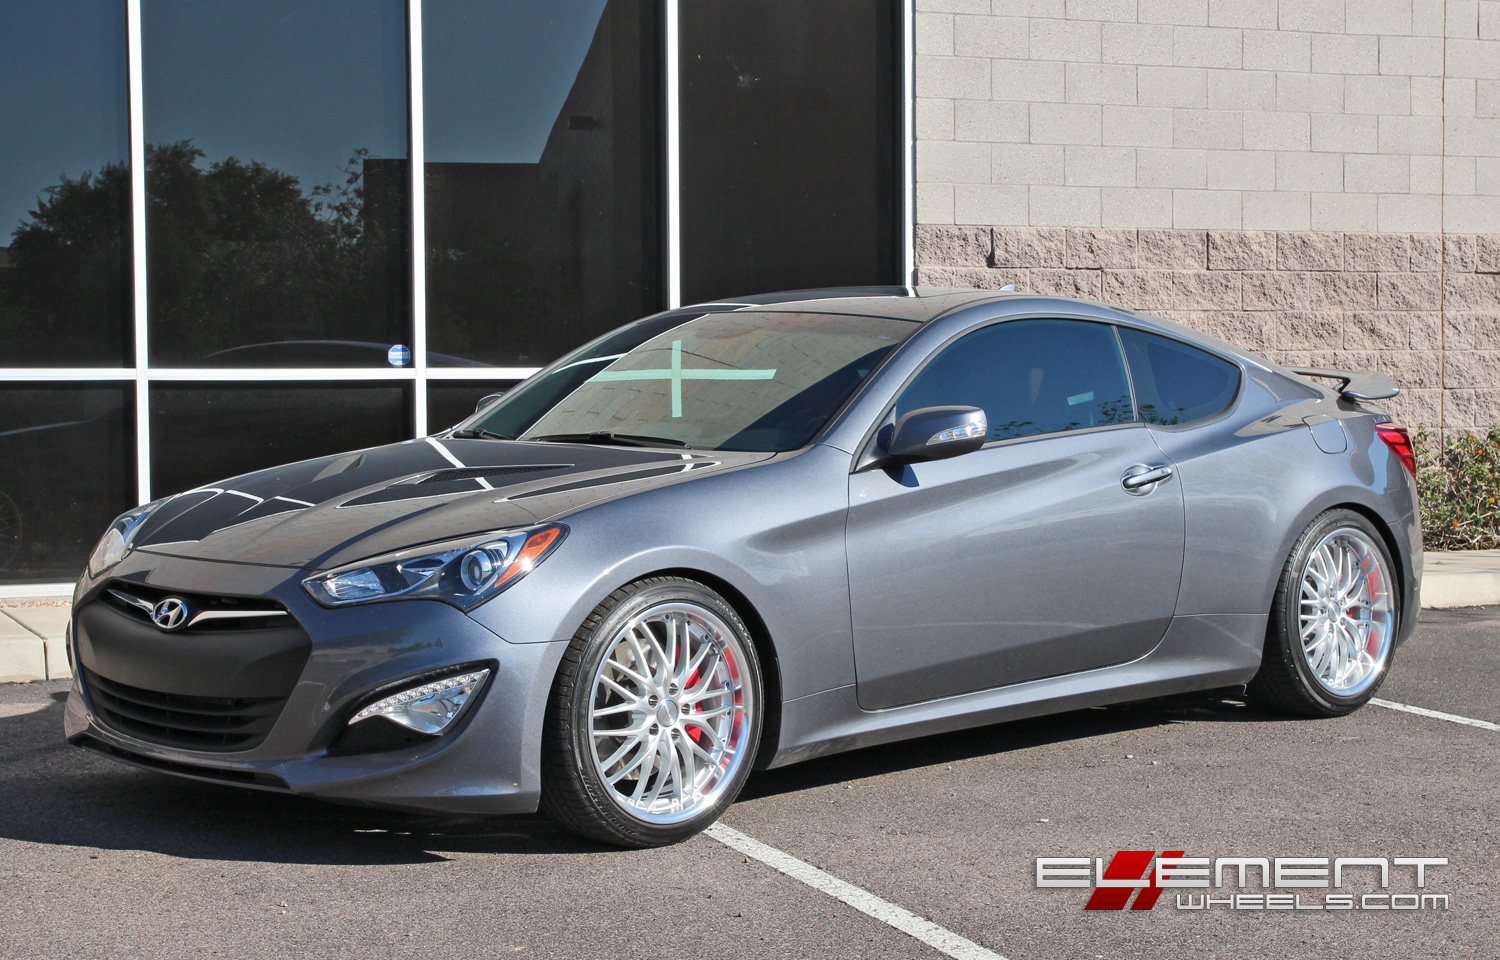 19 Inch Mrr Gt 1 Silver On 2015 Hyundai Genesis Coupe